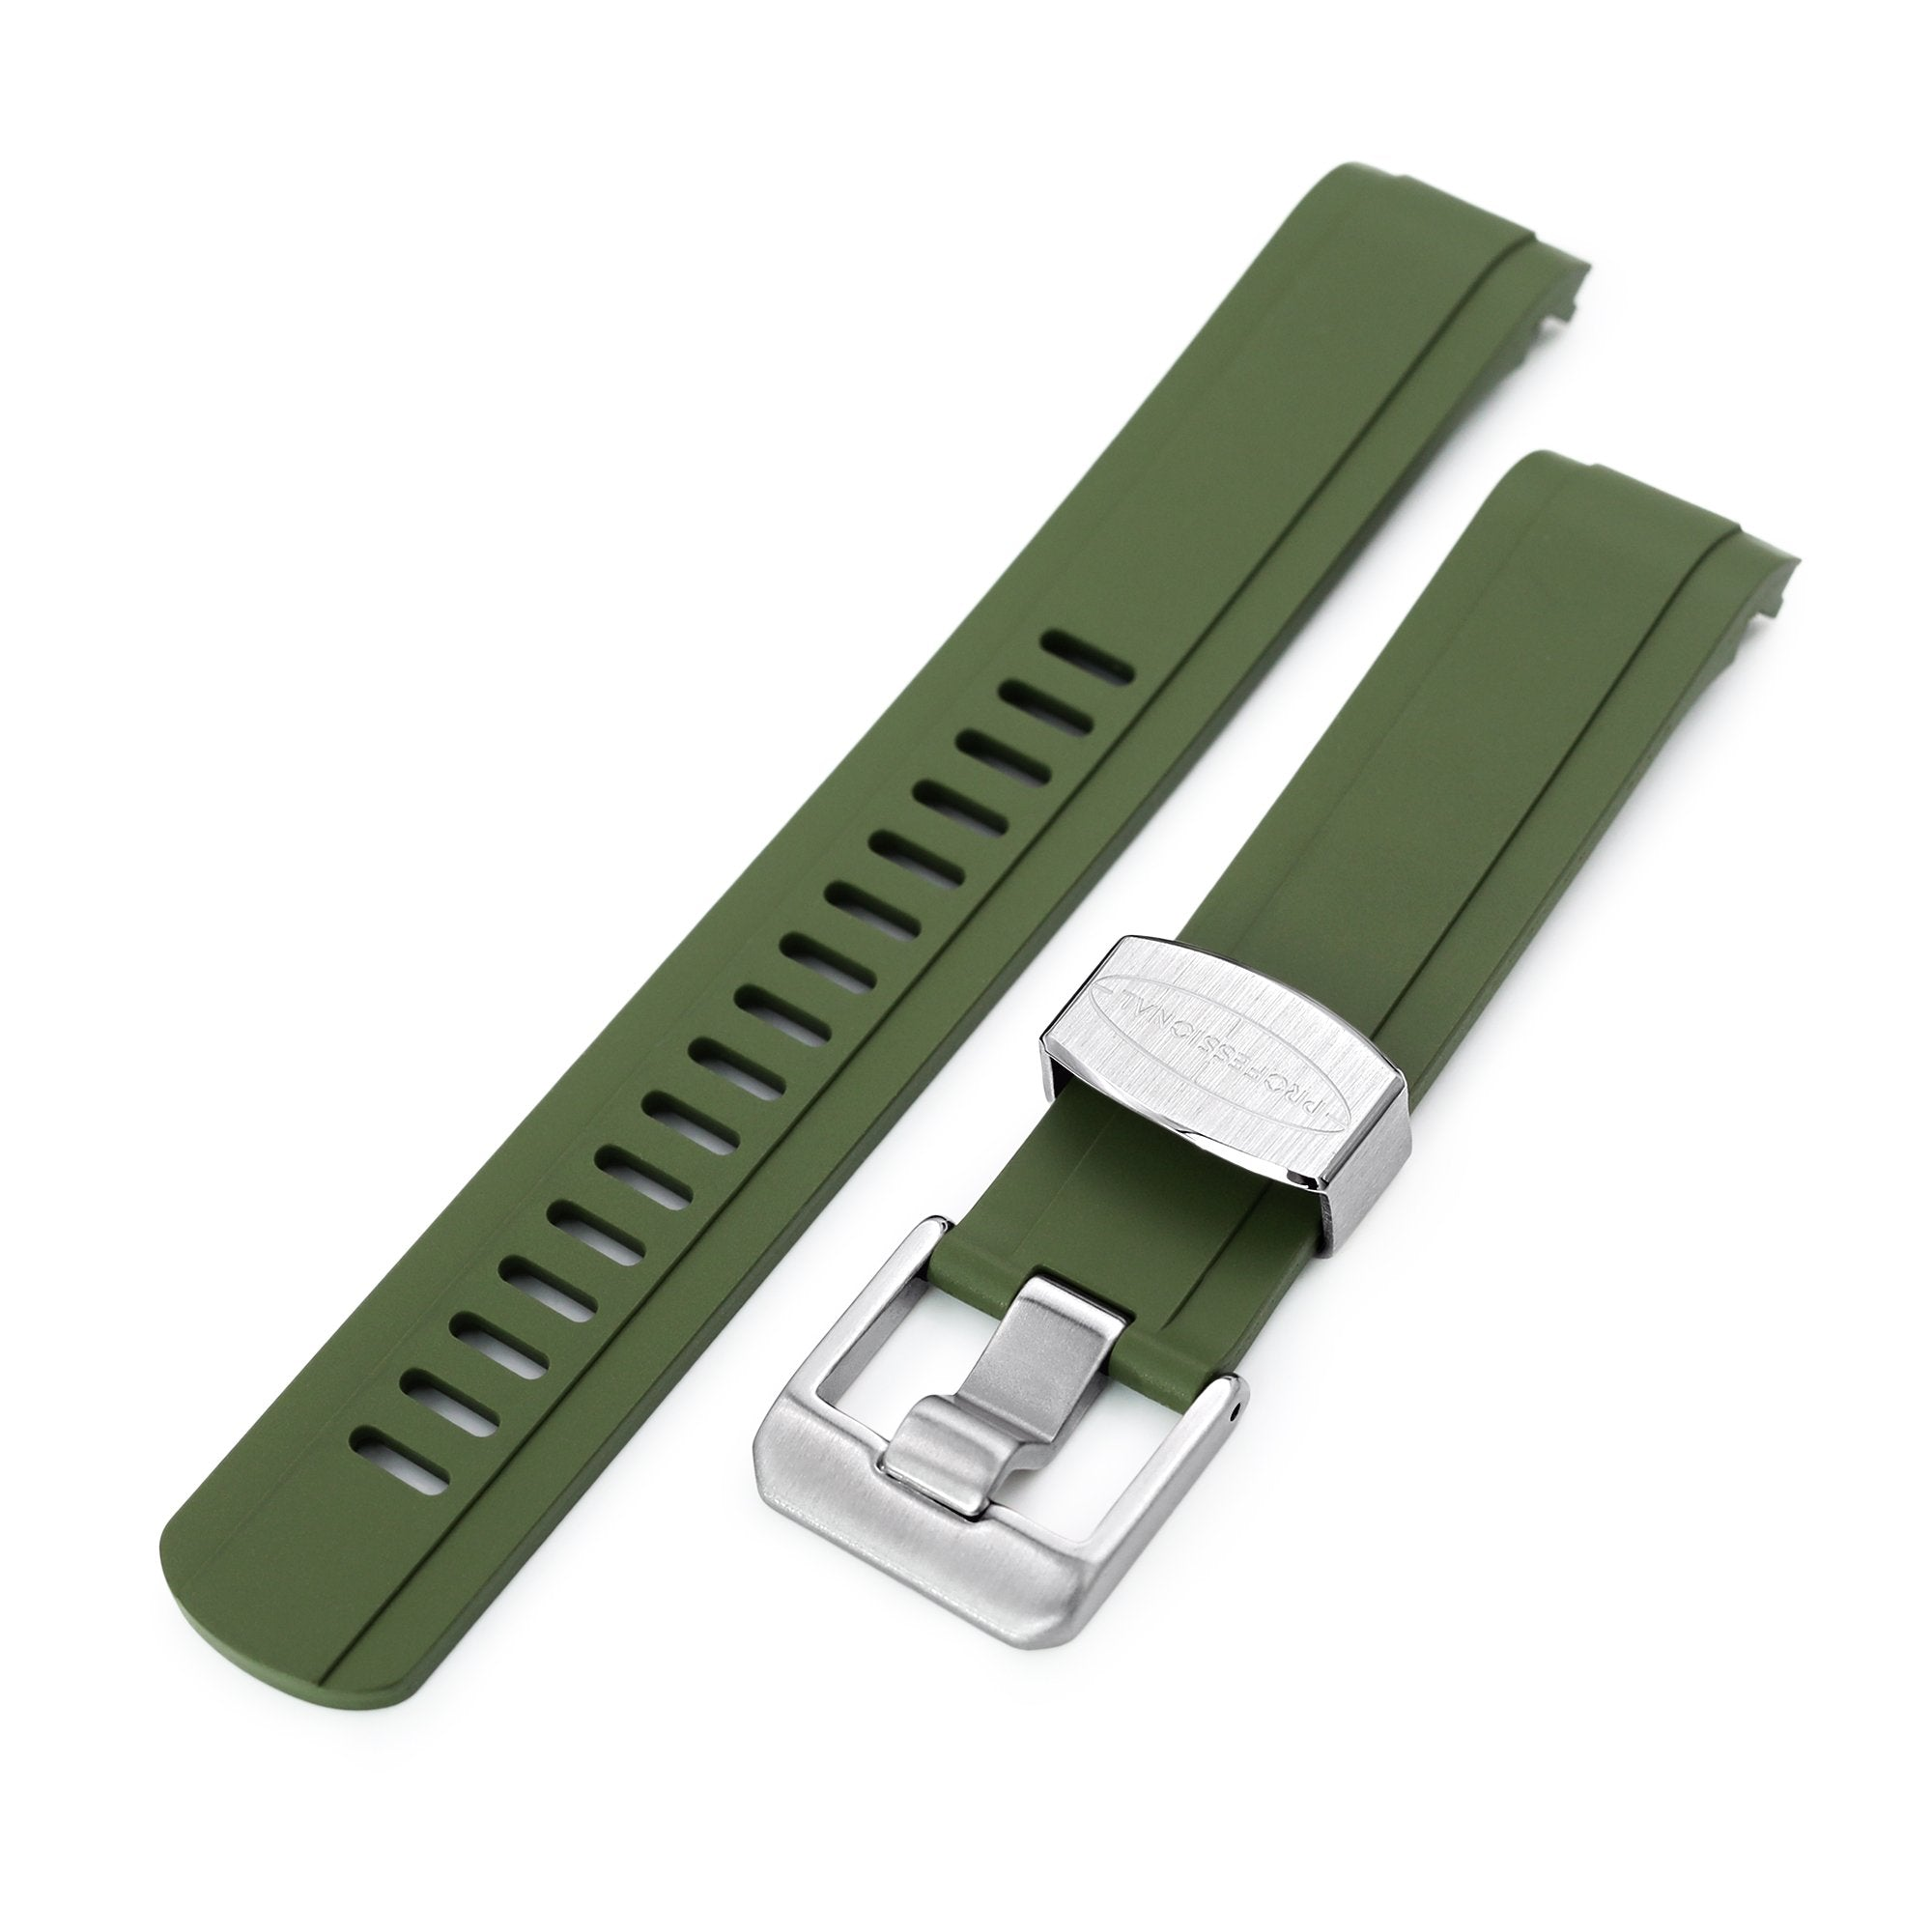 20mm Crafter Blue - Military Green Rubber Curved Lug Watch Strap for Seiko Baby MM200 & Mini Turtles SRPC35 Strapcode Watch Bands